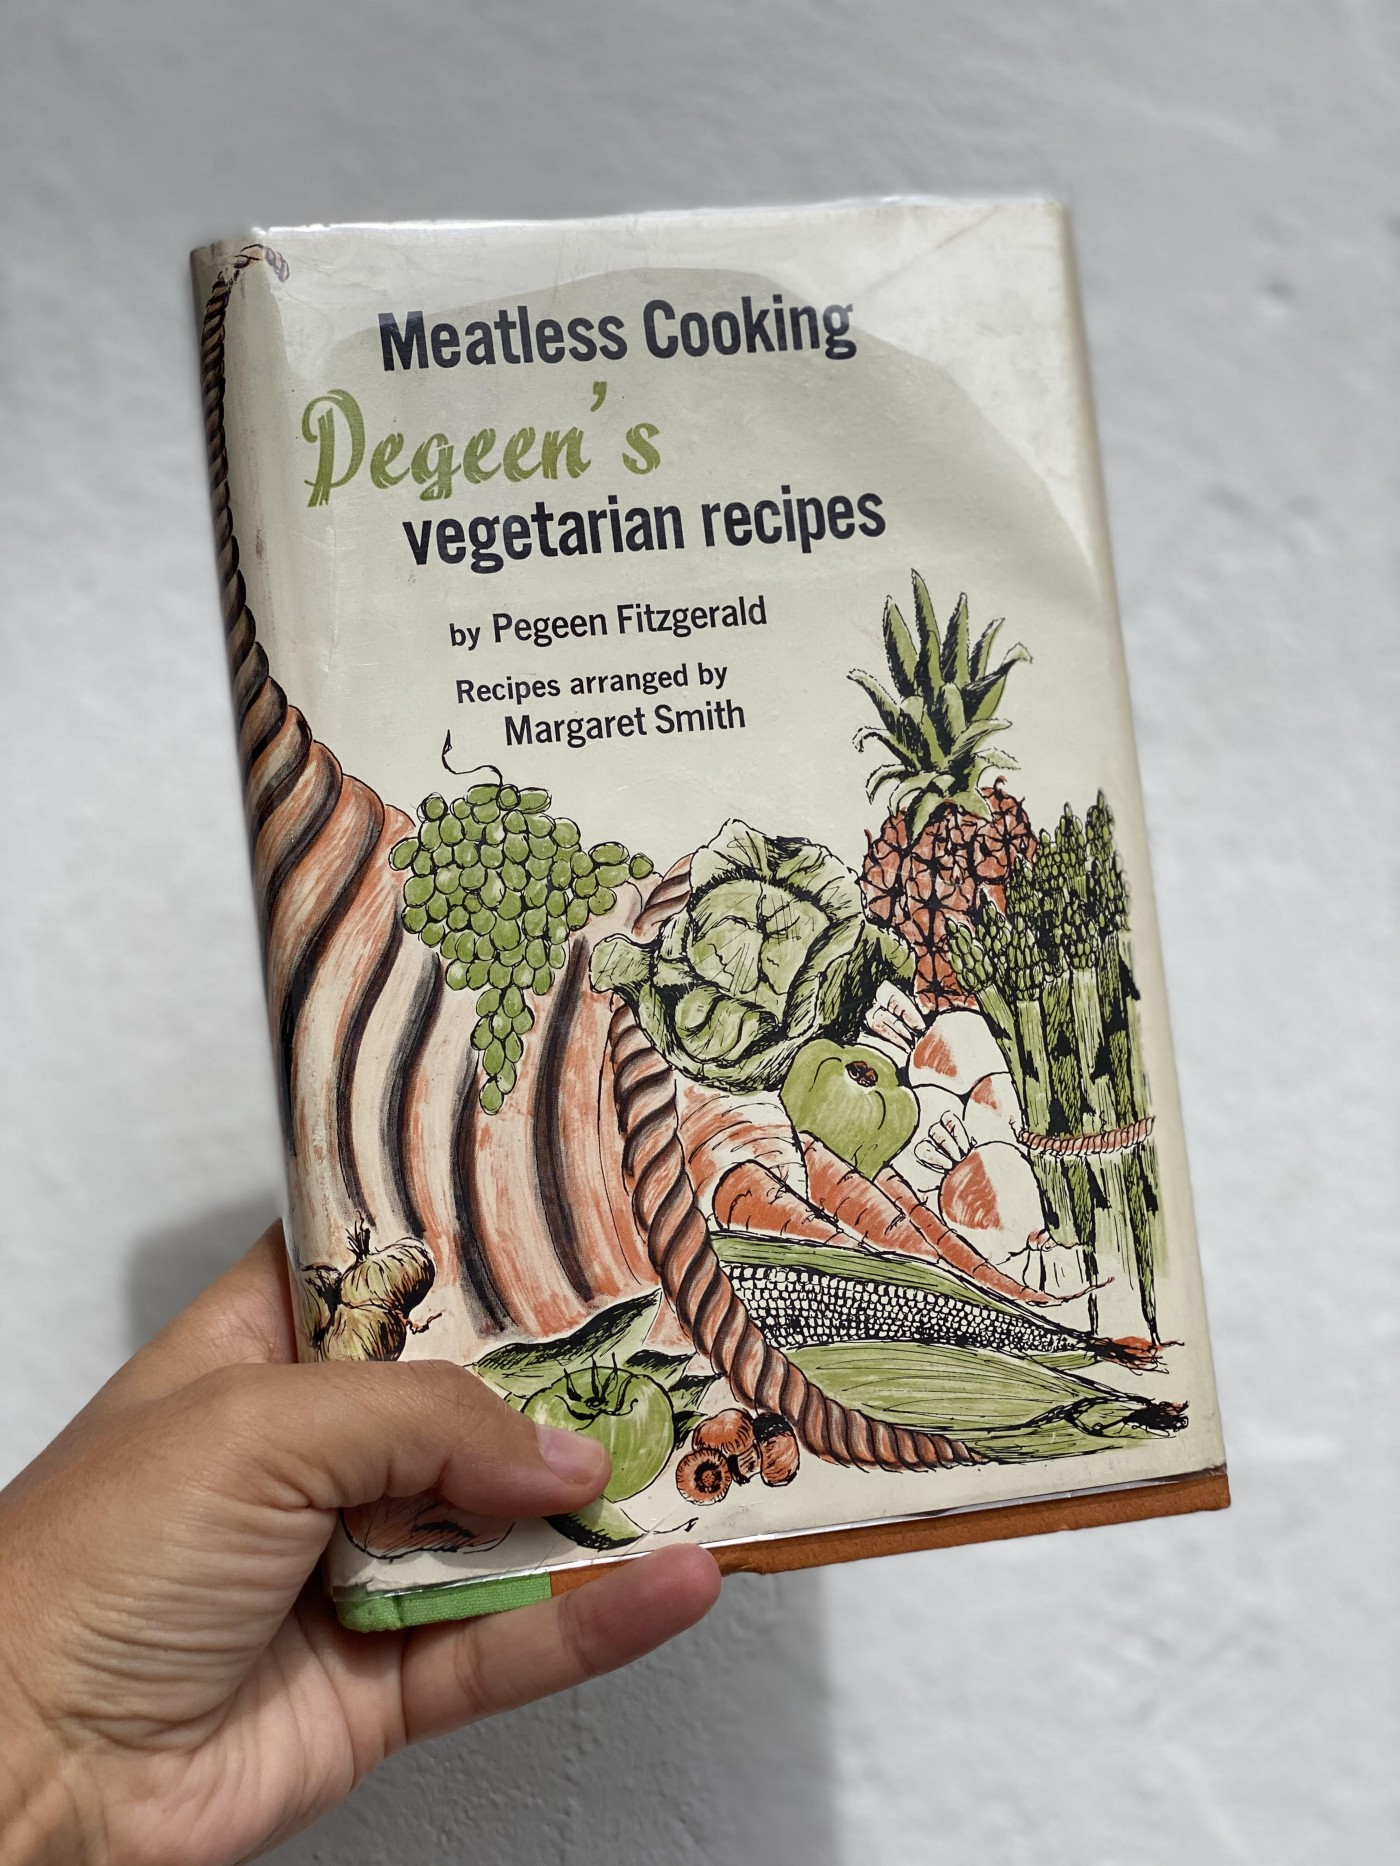 A hand holding up a vintage cookbook with a quaint illustration of fruits and veggies on the front.